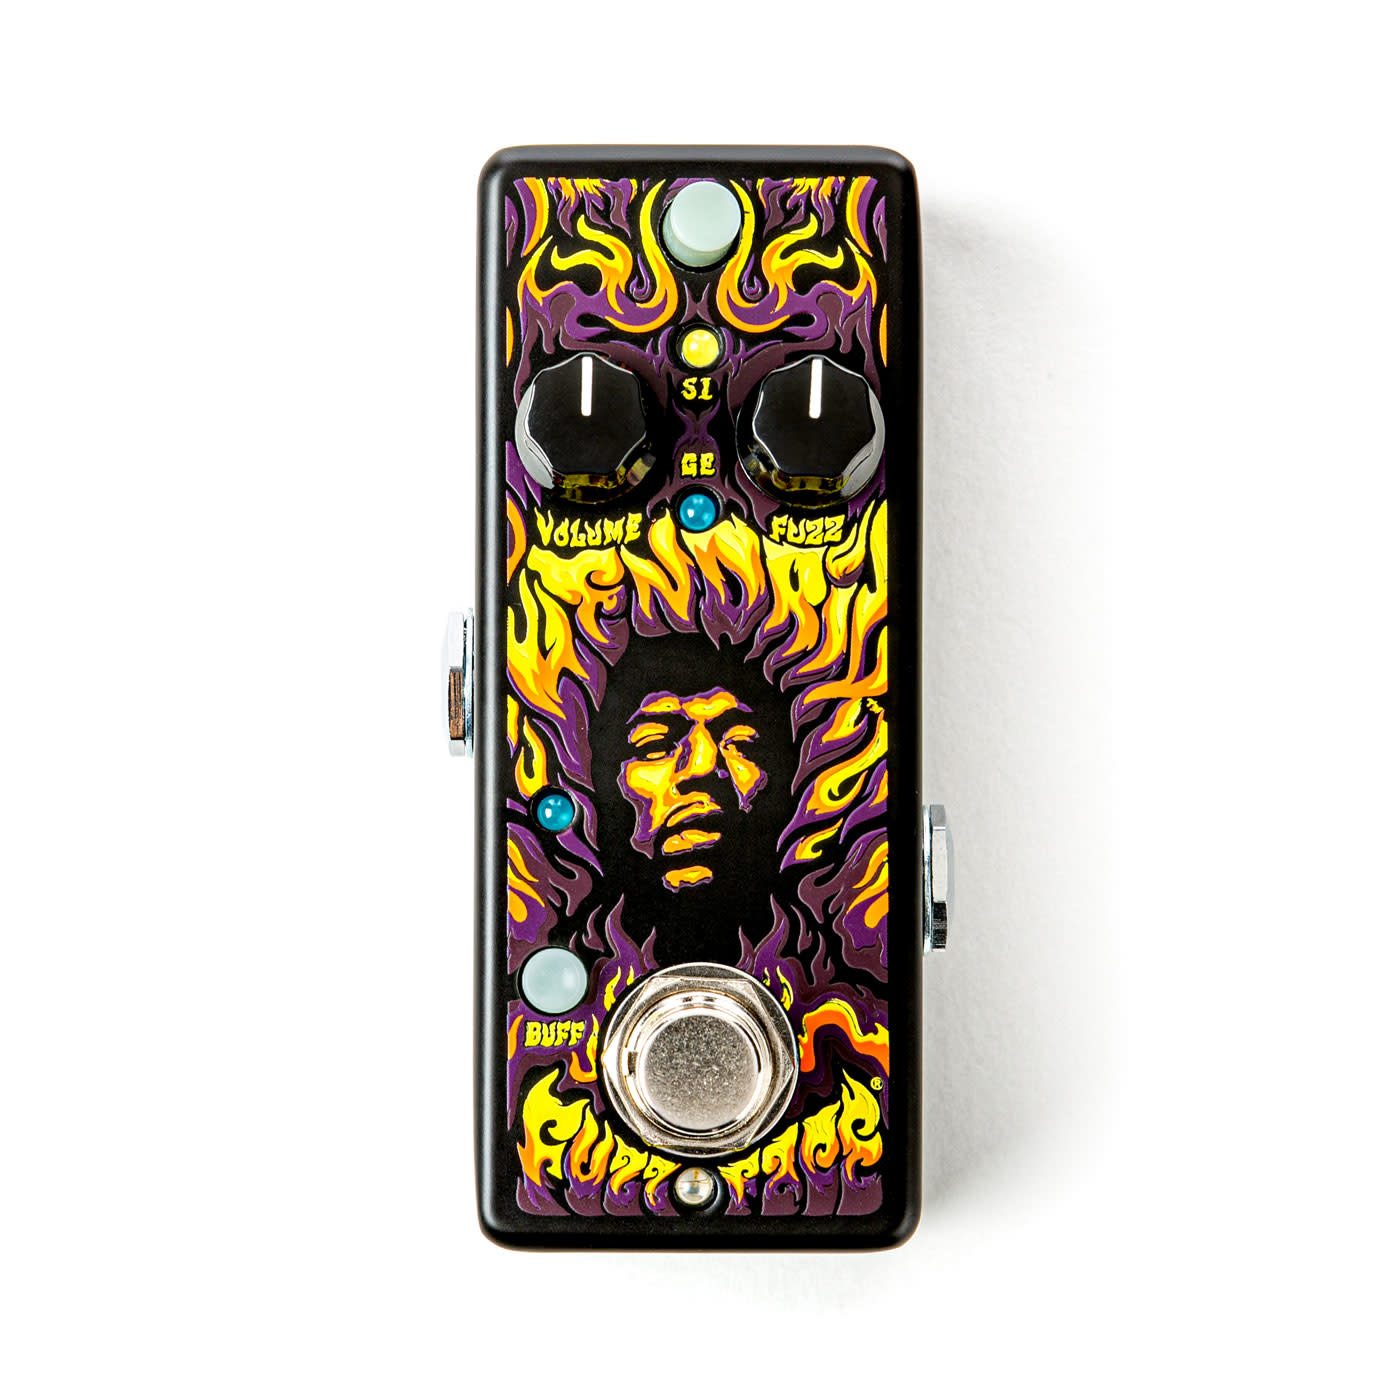 Dunlop NEW Dunlop Authentic Hendrix '69 Psych Series Fuzz Face